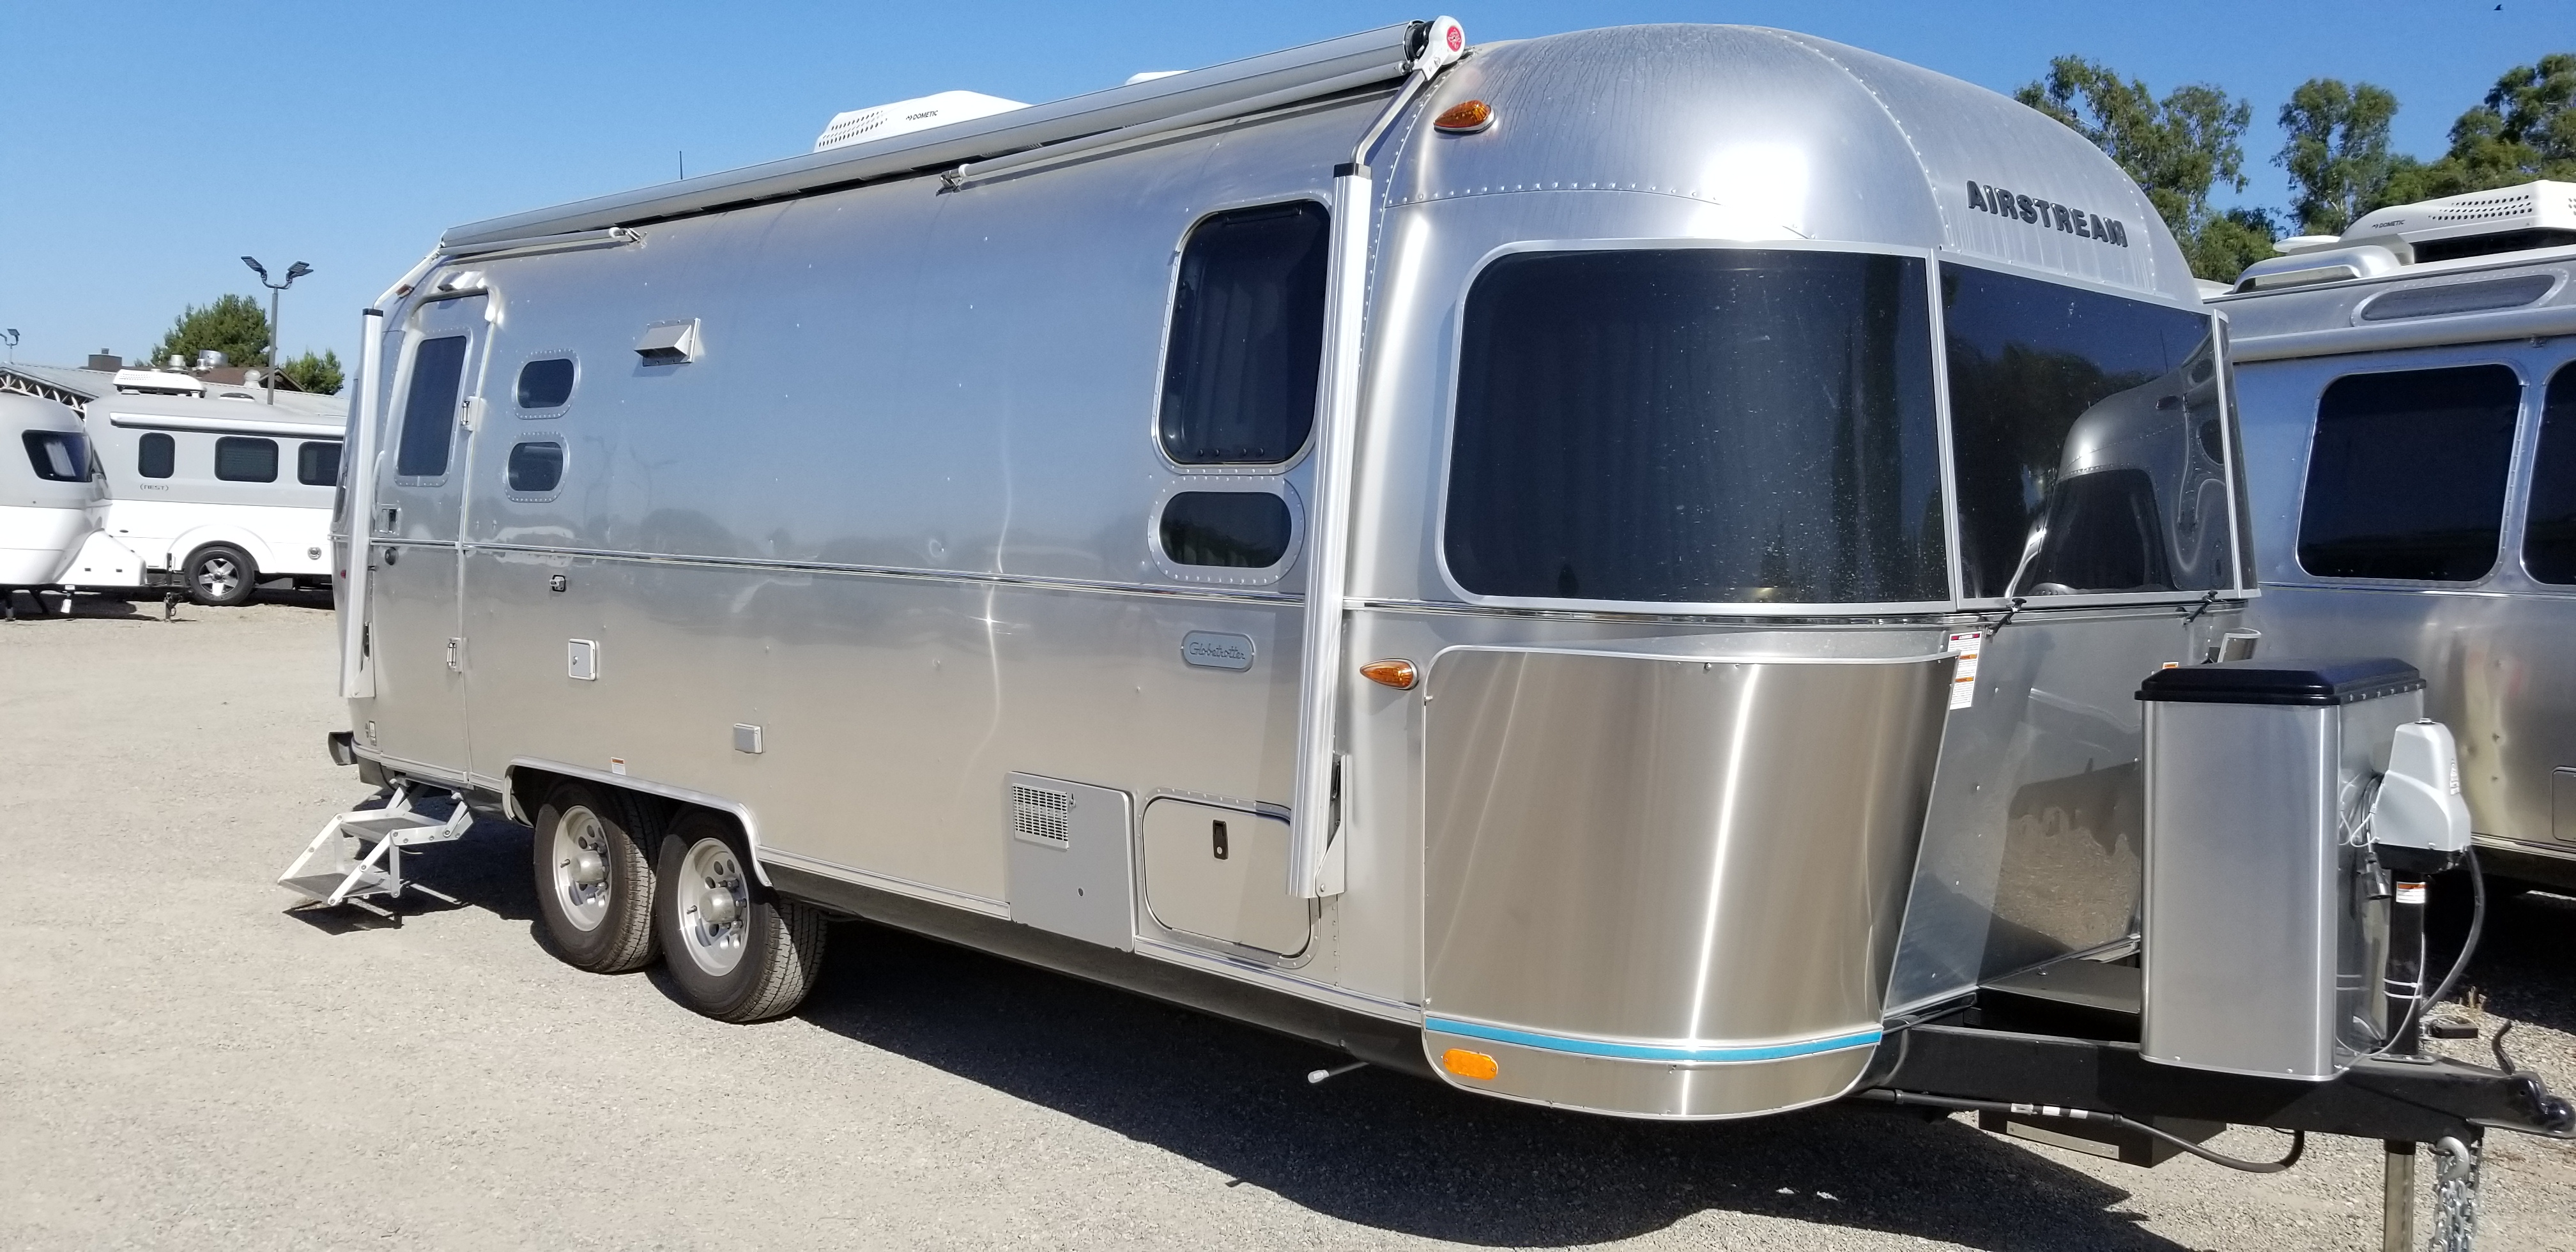 New 2020 Airstream Globetrotter 25FBQ